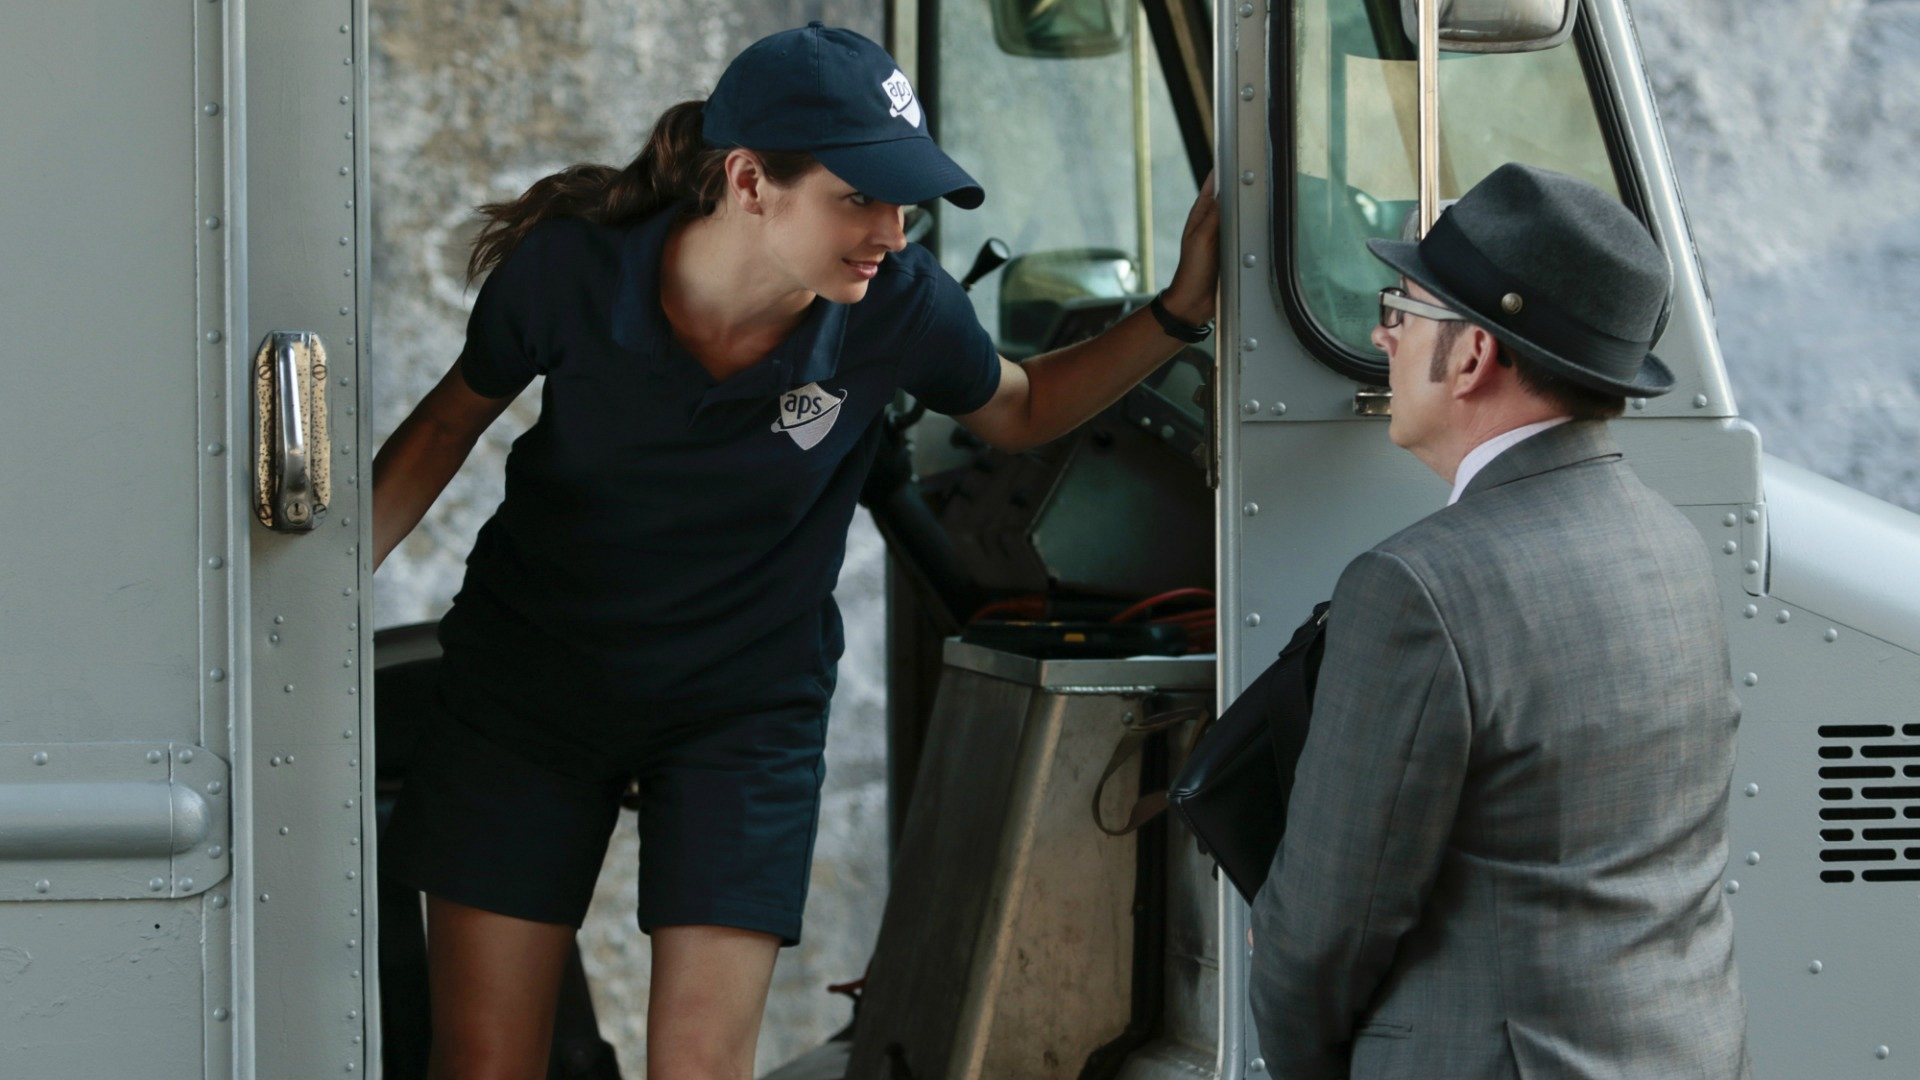 Root and Finch discuss a game plan.